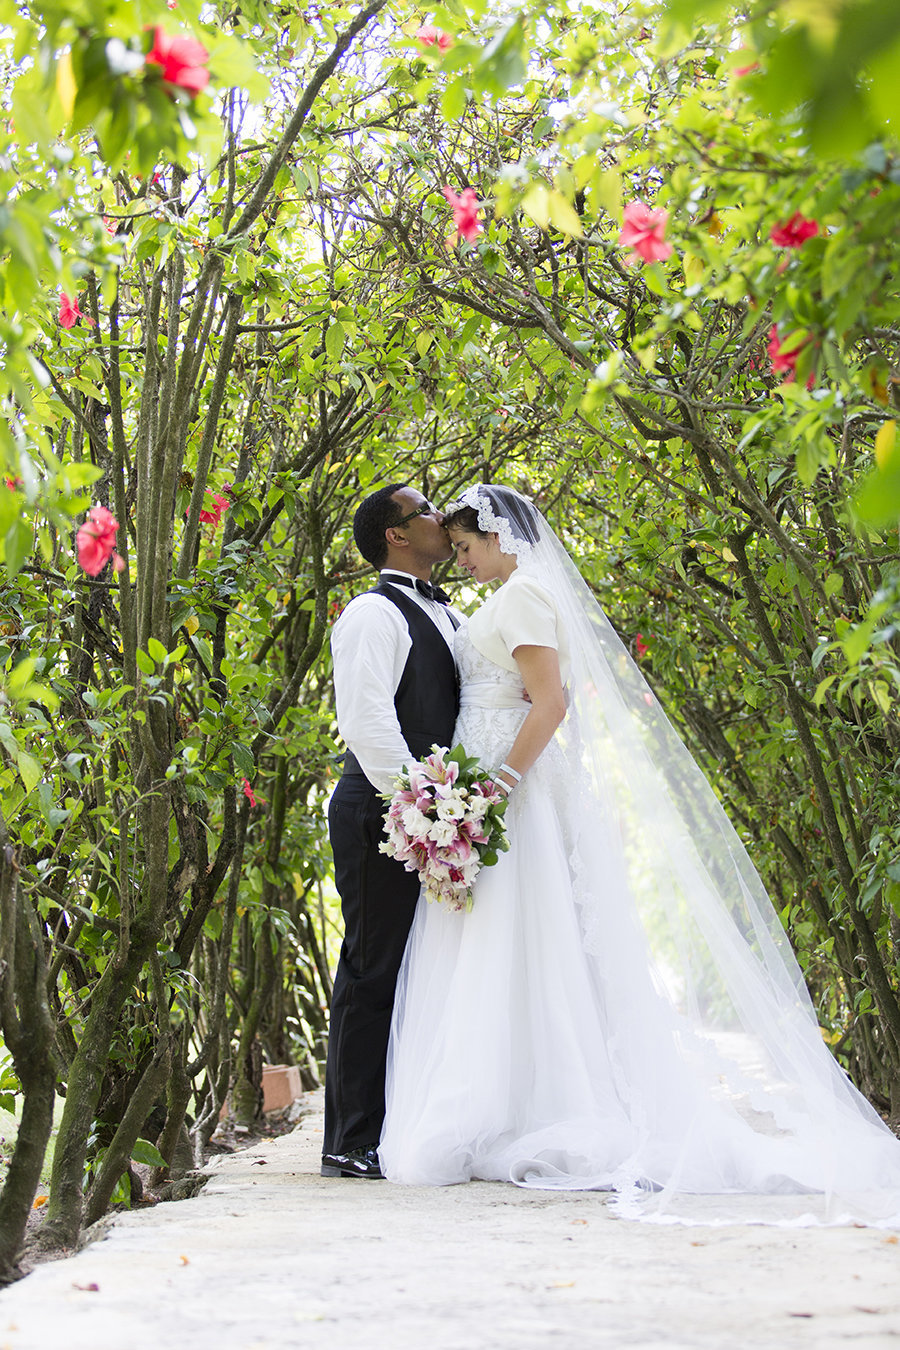 1Rebekah&DanielWedding379 dominican repulic destination wedding arch of flowers bride and groom cathedral veil travel photographer